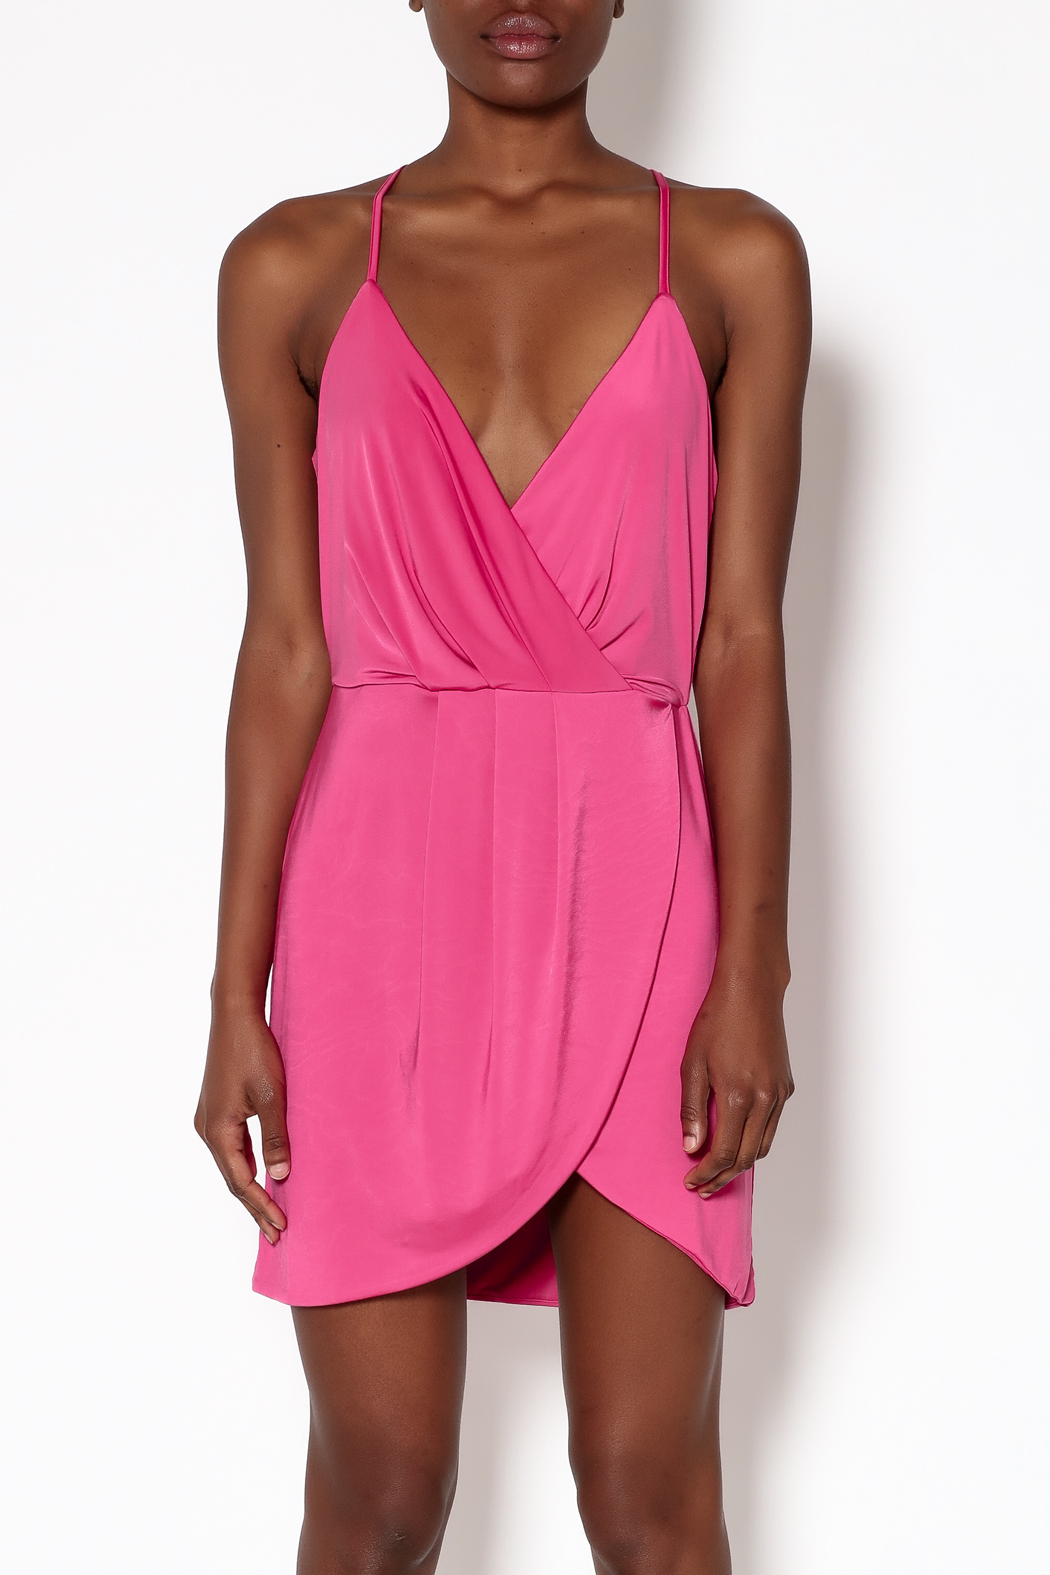 Lovers + Friends Pink Muse Dress - Side Cropped Image